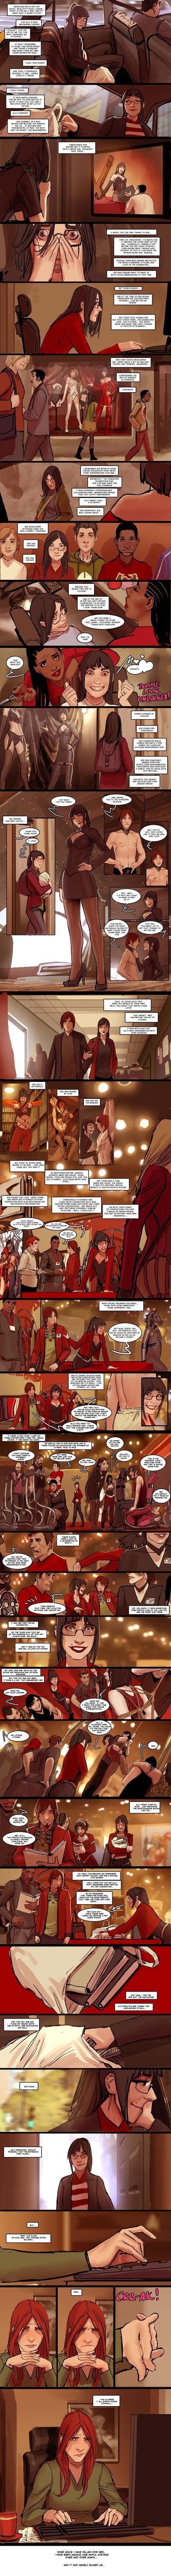 [Shiniez] Sunstone - Chapters 1-2-3-4-5(ongoing) - part 3